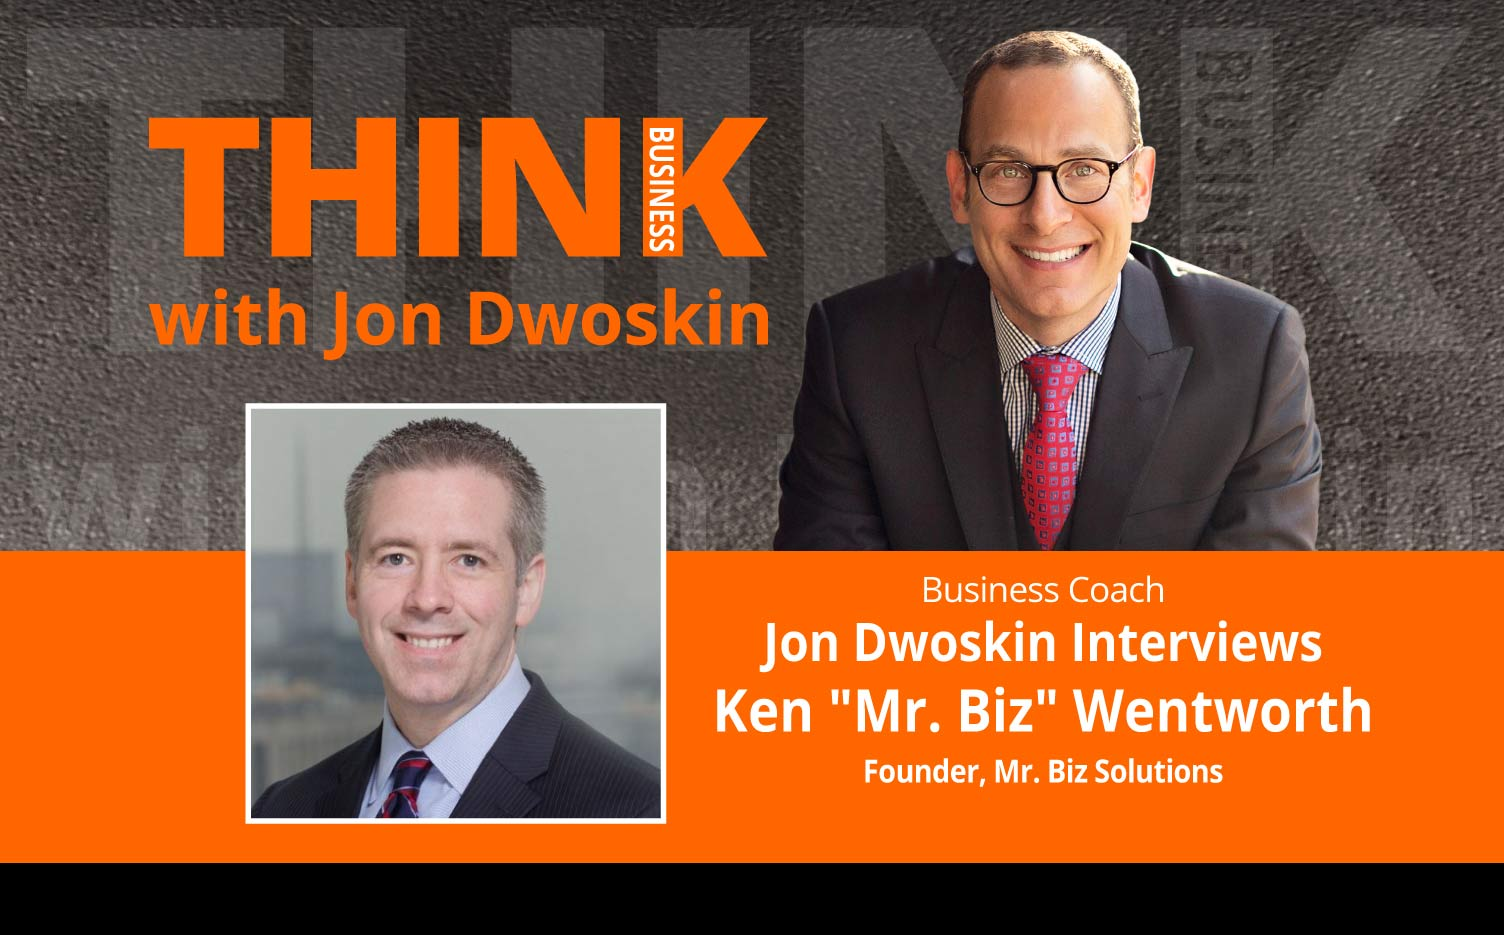 "THINK Business: Jon Dwoskin Interviews Ken ""Mr. Biz"" Wentworth, Founder, Mr. Biz Solutions"